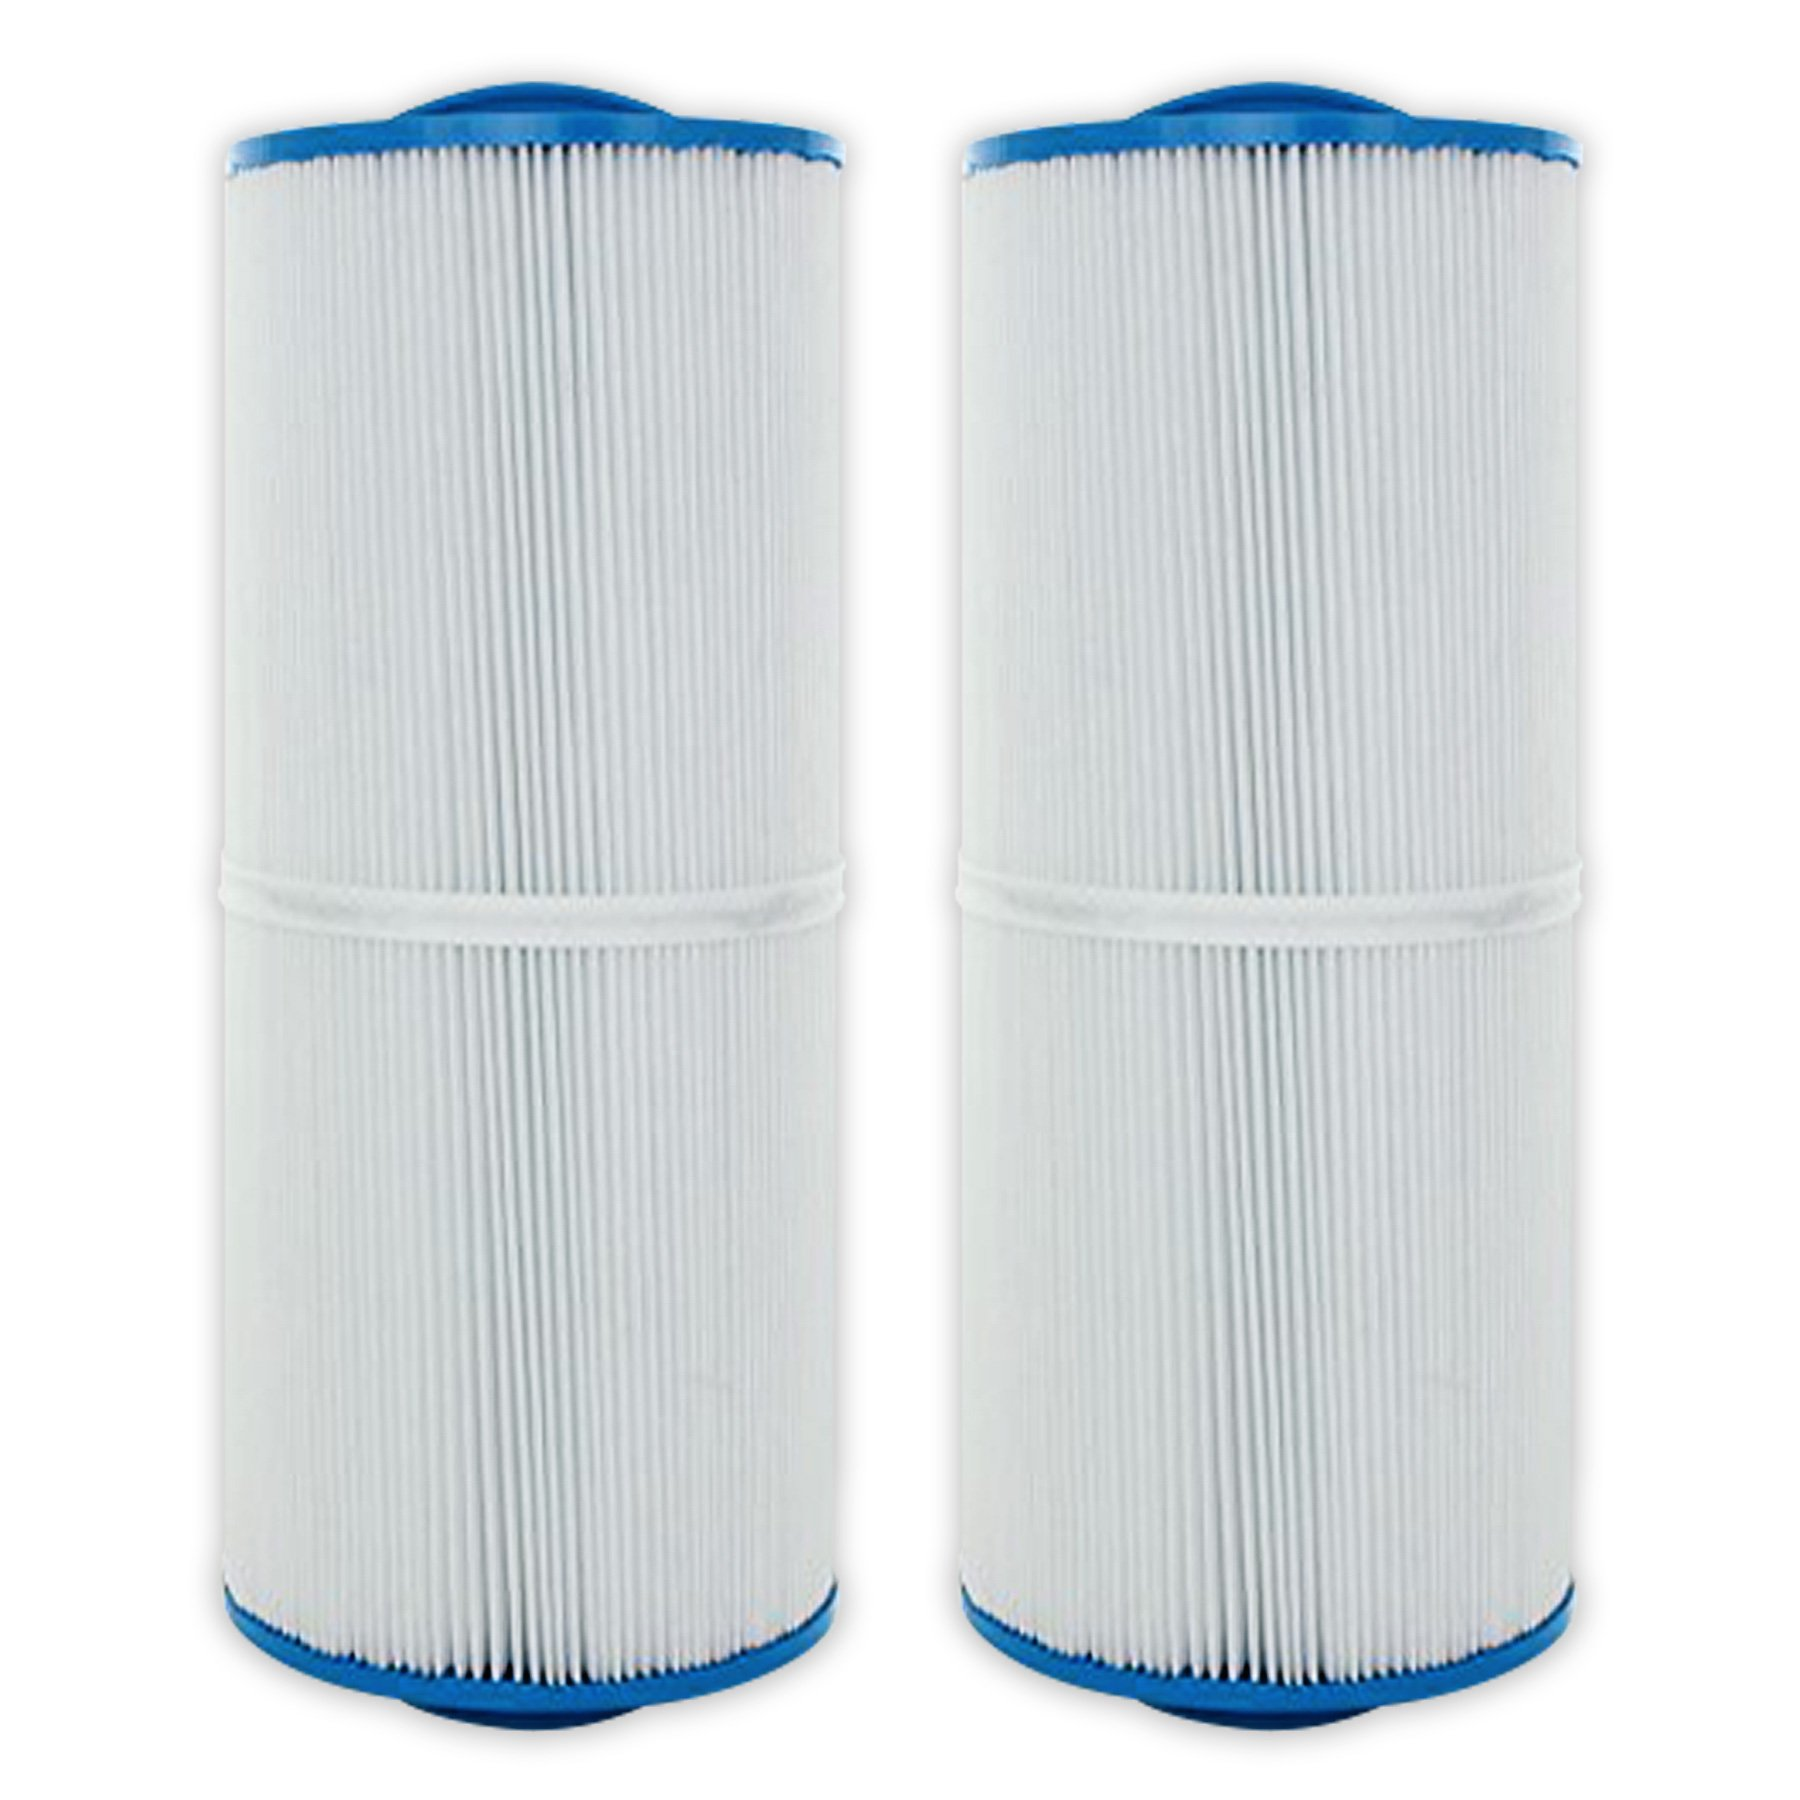 2-Pack Guardian Pool Spa Filter Cartridges Replaces FC-0195M 5CH-502 PPM50SC-F2M Cal Marquis Pacific spas by Guardian Filtration Products